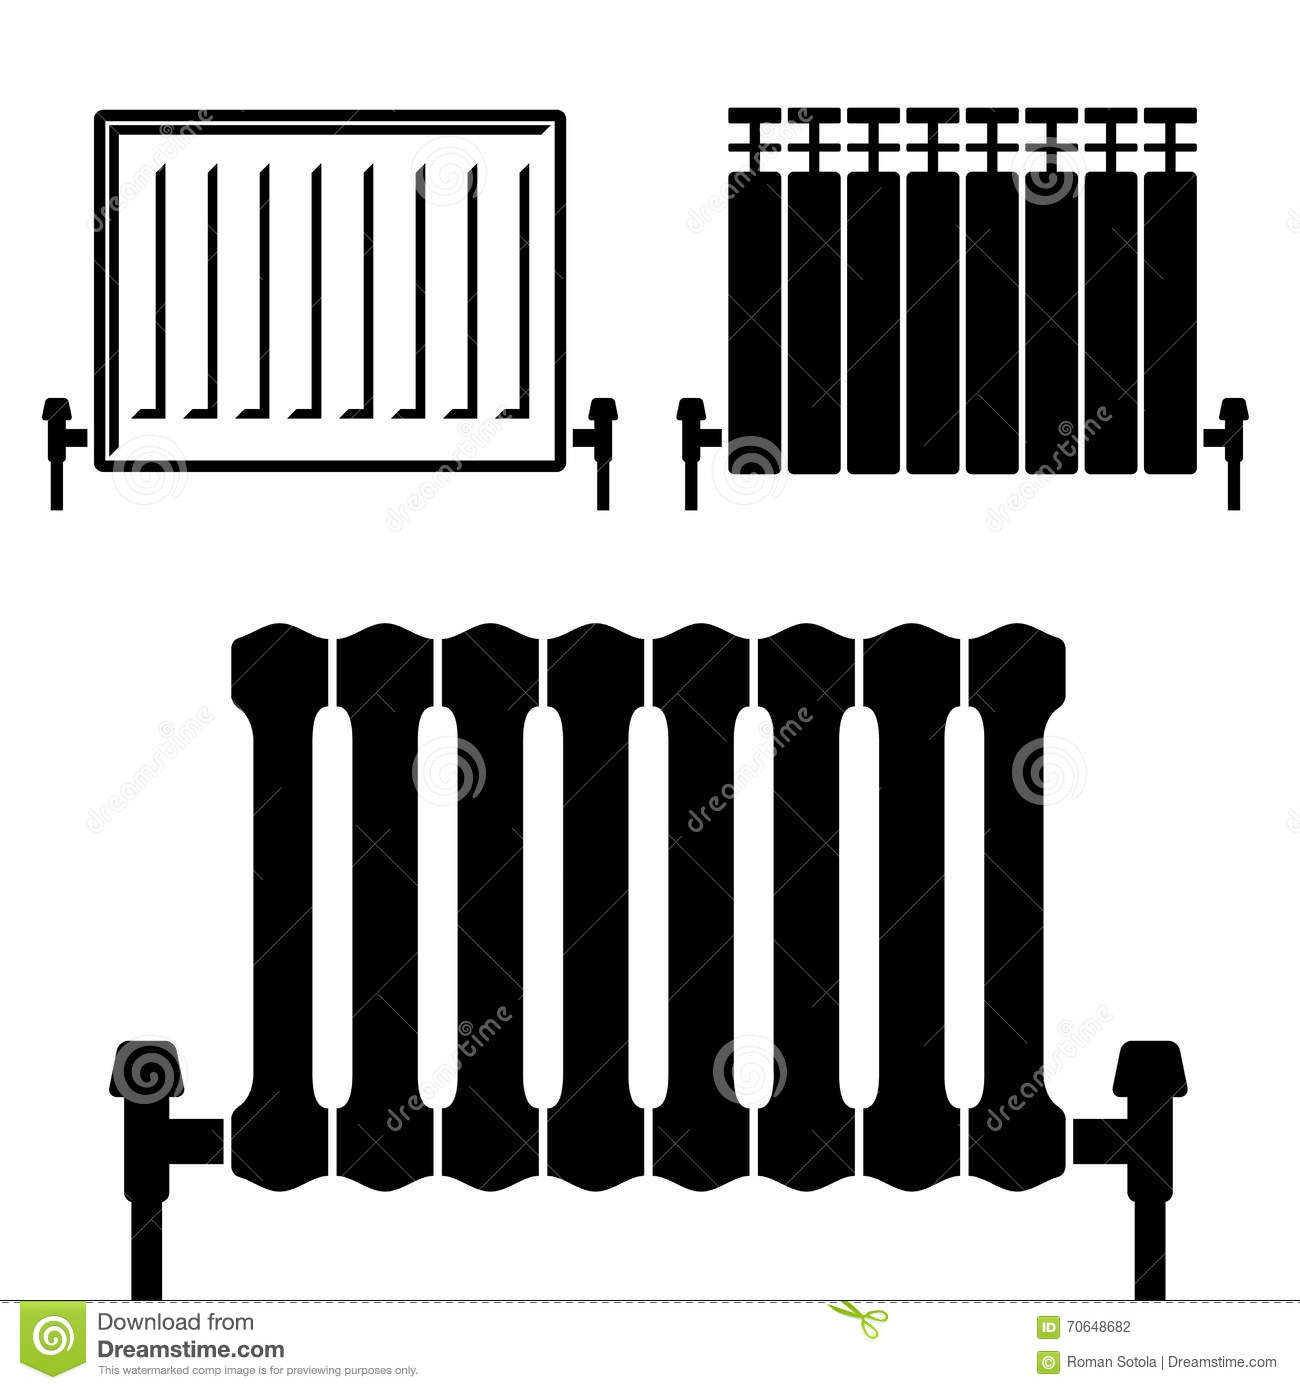 symboles de noir de radiateur de chauffage central illustration de vecteur illustration 70648682. Black Bedroom Furniture Sets. Home Design Ideas